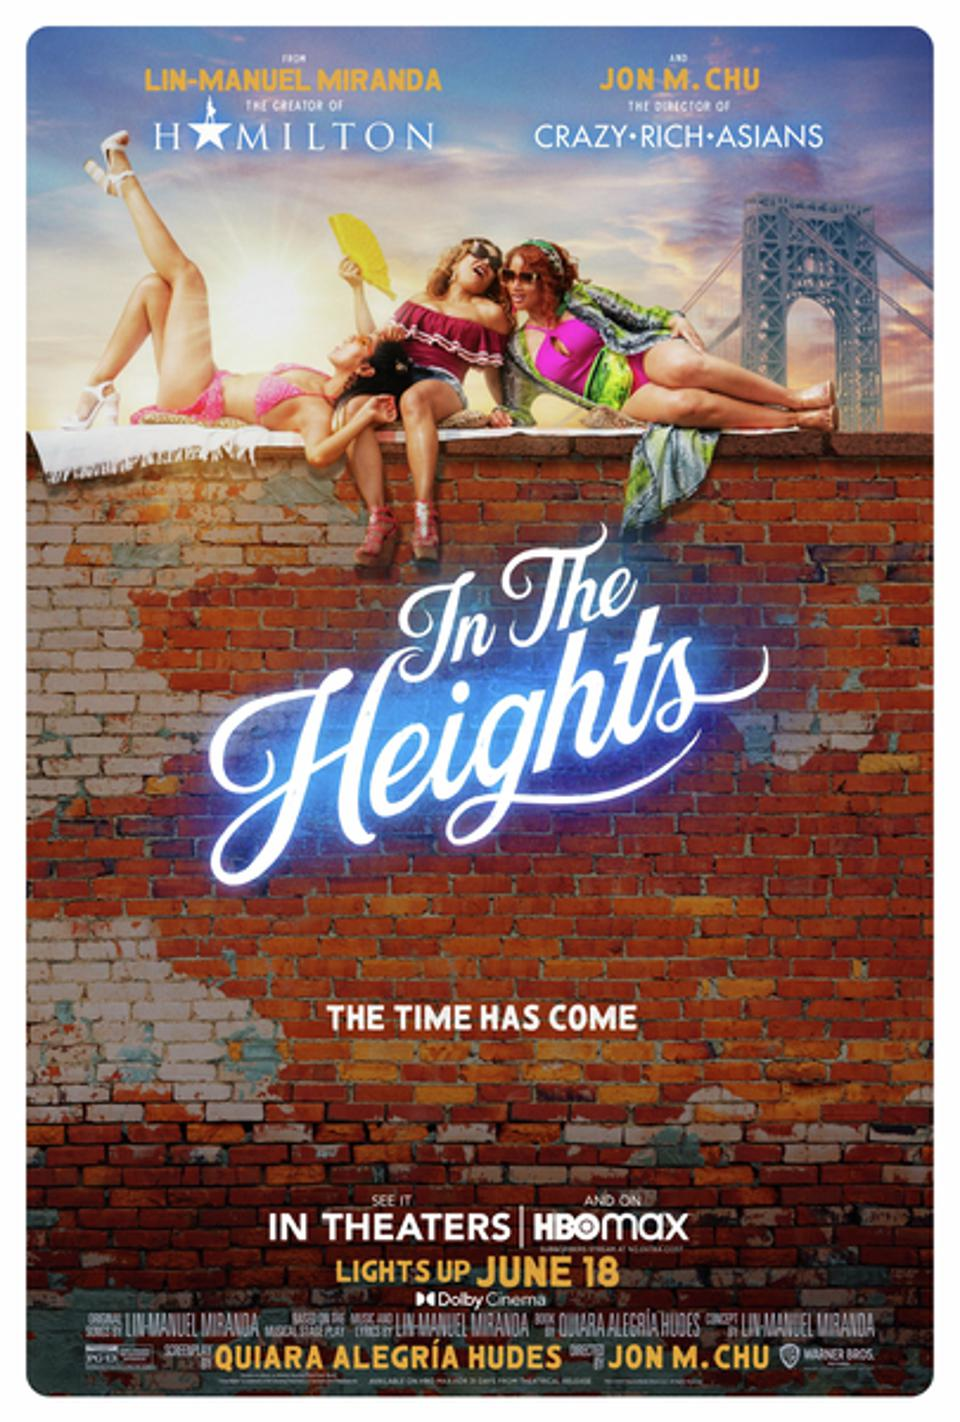 'In The Heights' poster